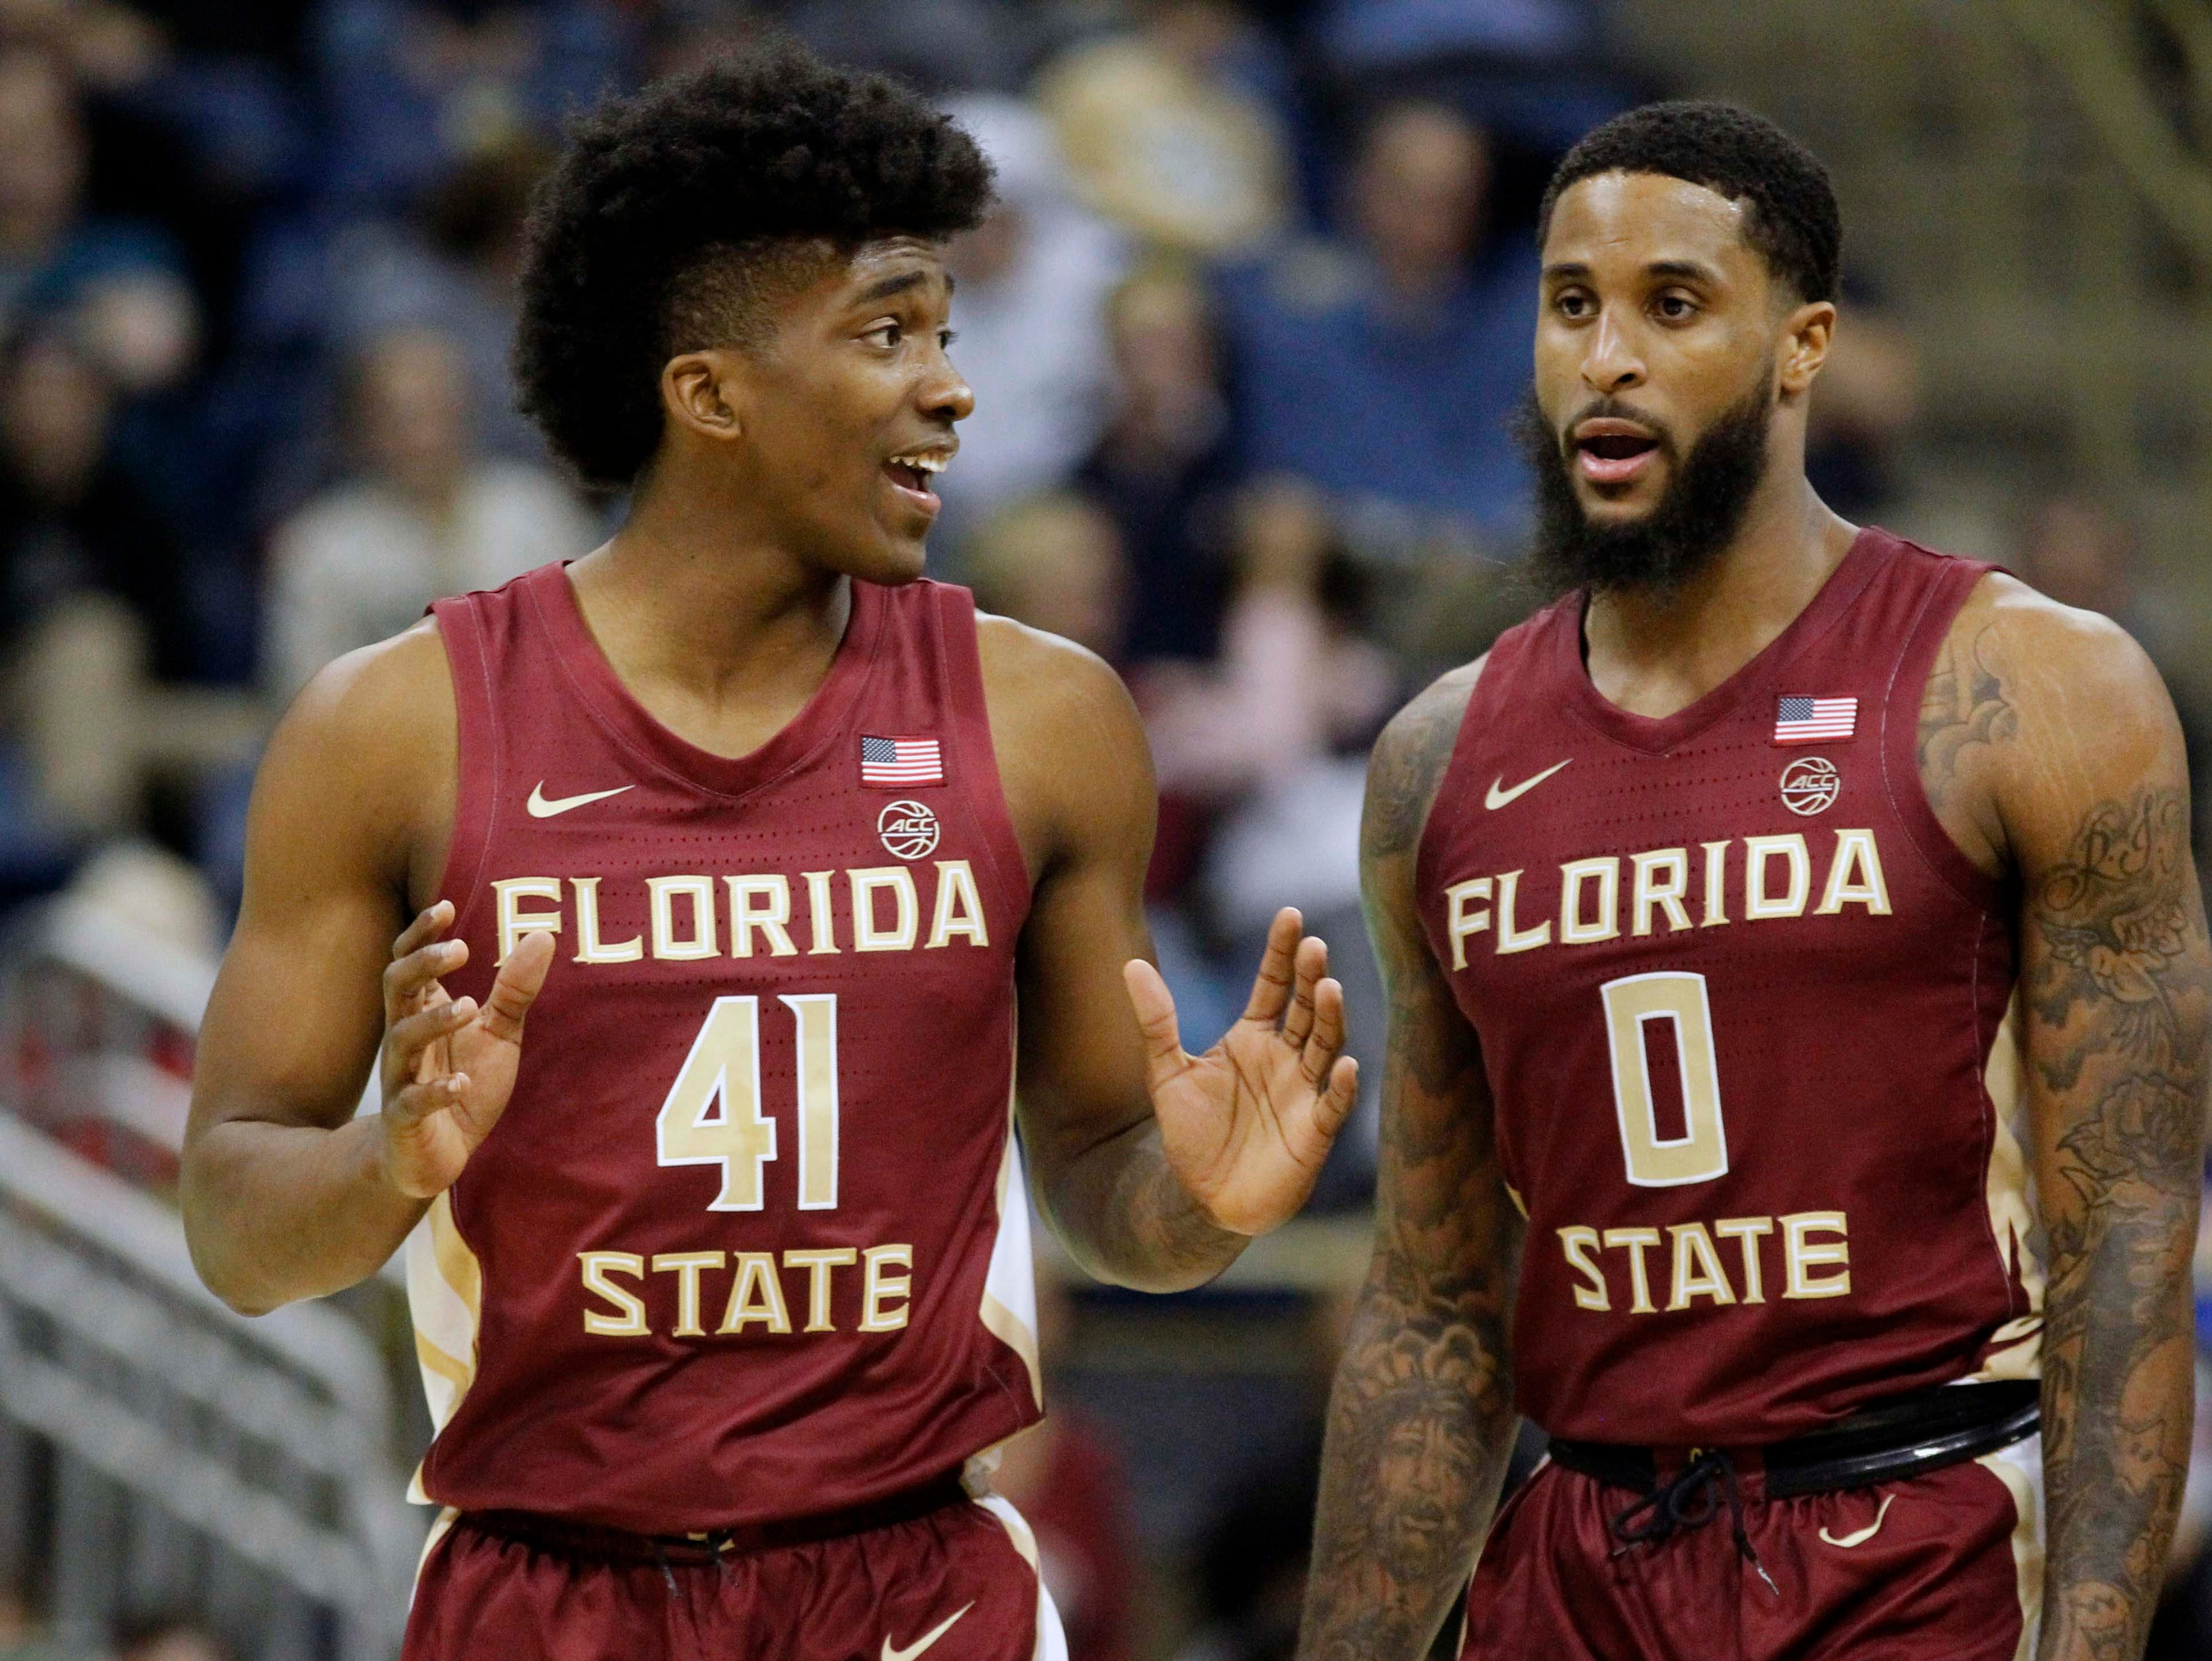 Jan 14, 2019; Pittsburgh, PA, USA; Florida State Seminoles guard Terance Mann (wearing 41) talks with forward Phil Cofer (0) against the Pittsburgh Panthers during the second half at the Petersen Events Center. Pittsburgh won 75-62. Mandatory Credit: Charles LeClaire-USA TODAY Sports